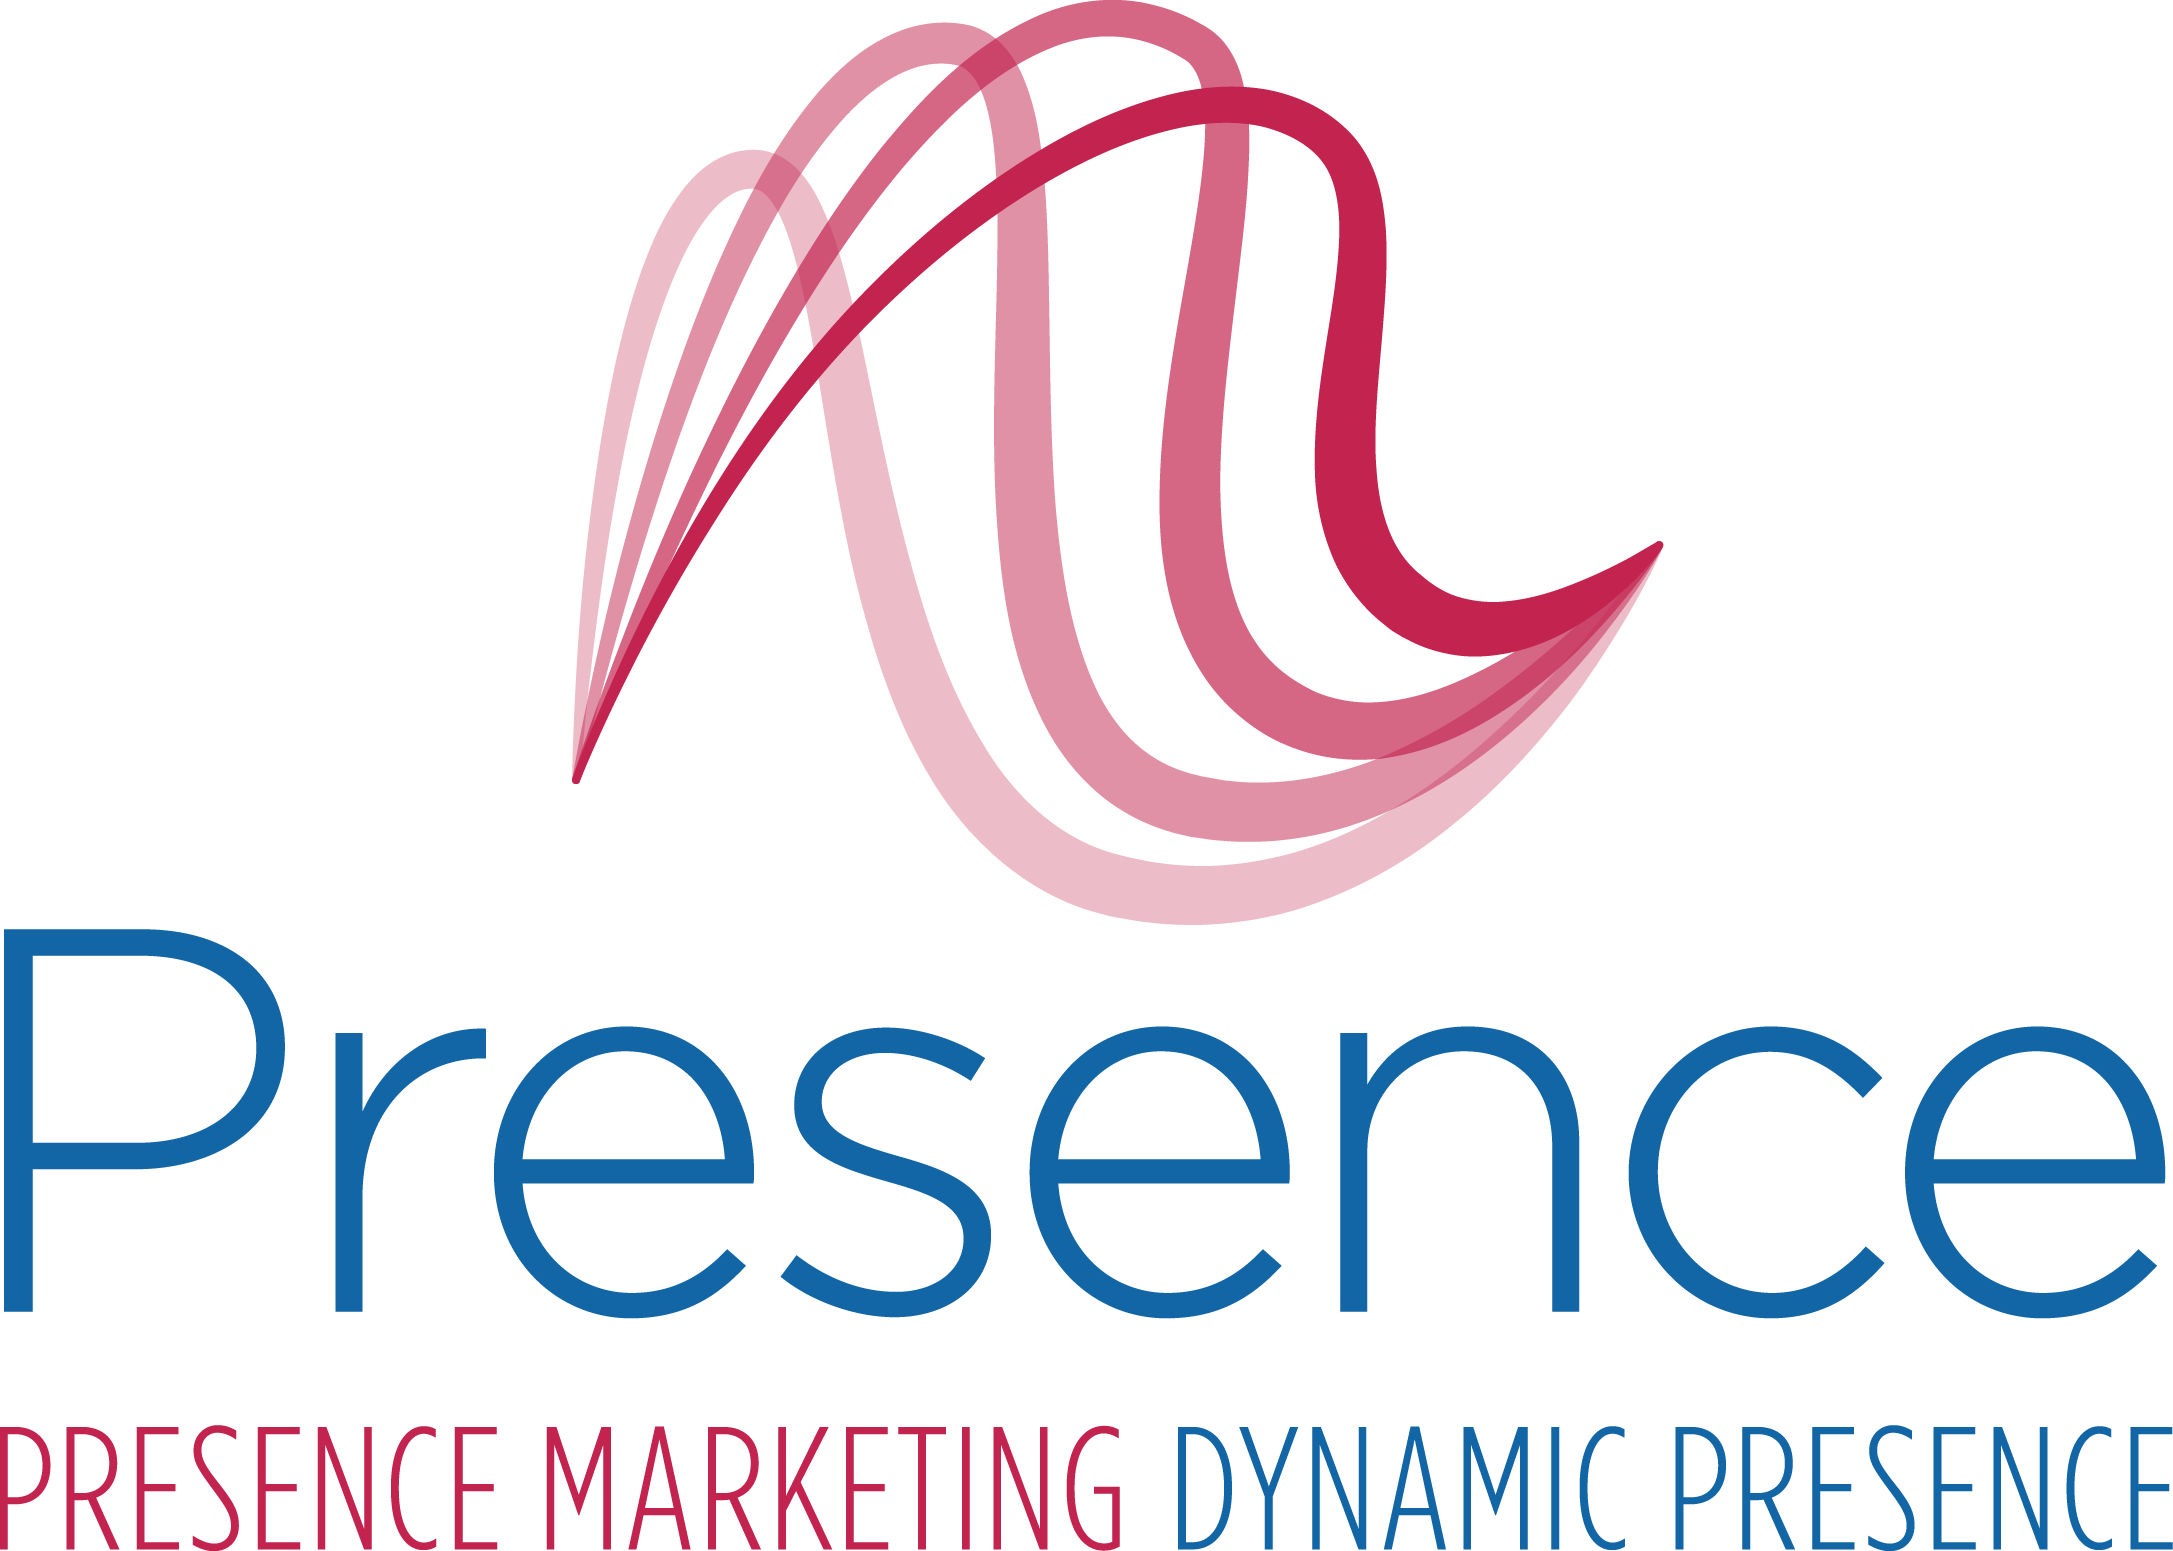 Presence Marketing Inc